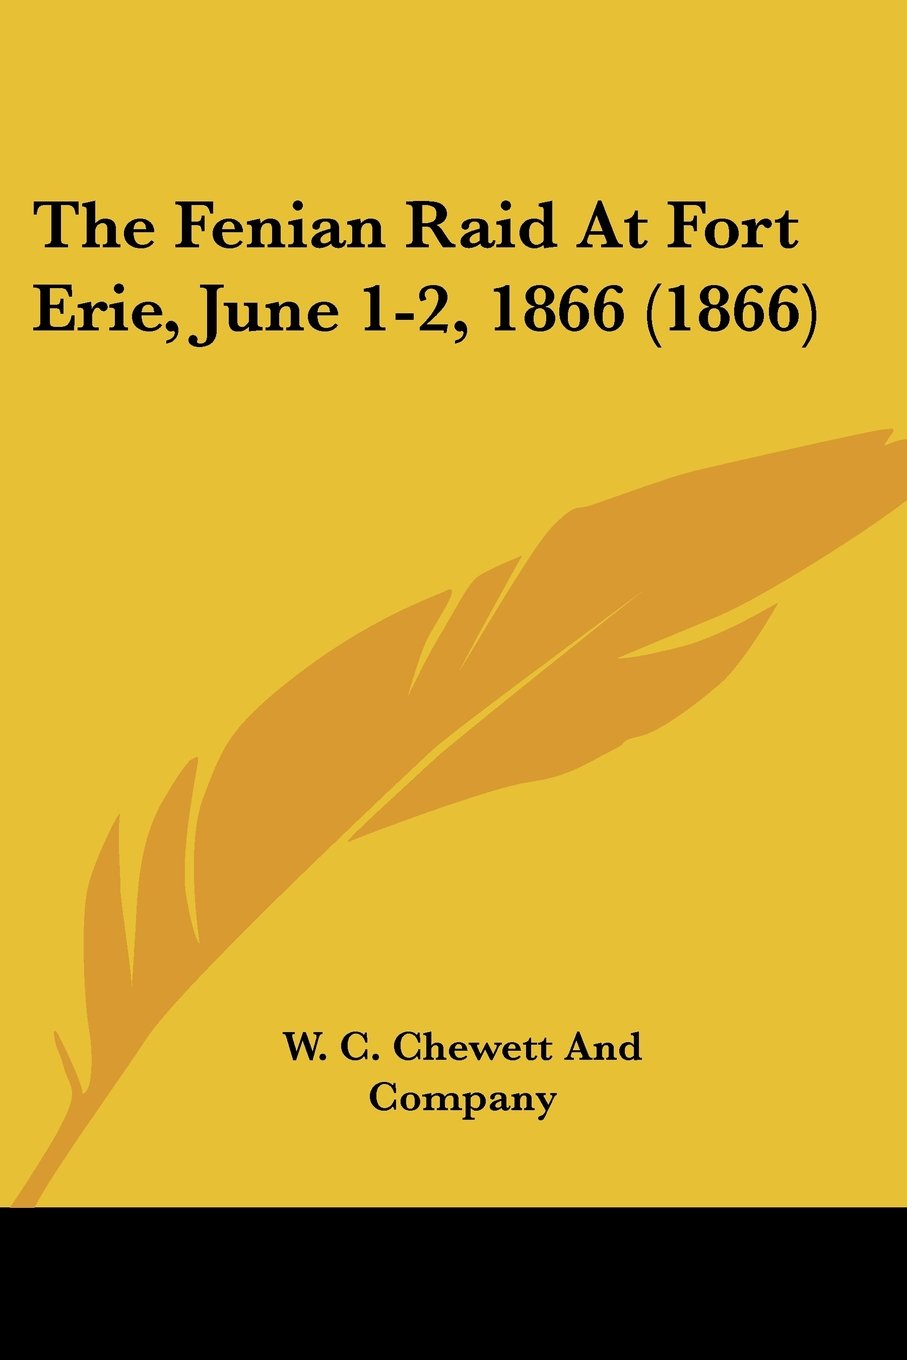 Download The Fenian Raid At Fort Erie, June 1-2, 1866 (1866) PDF